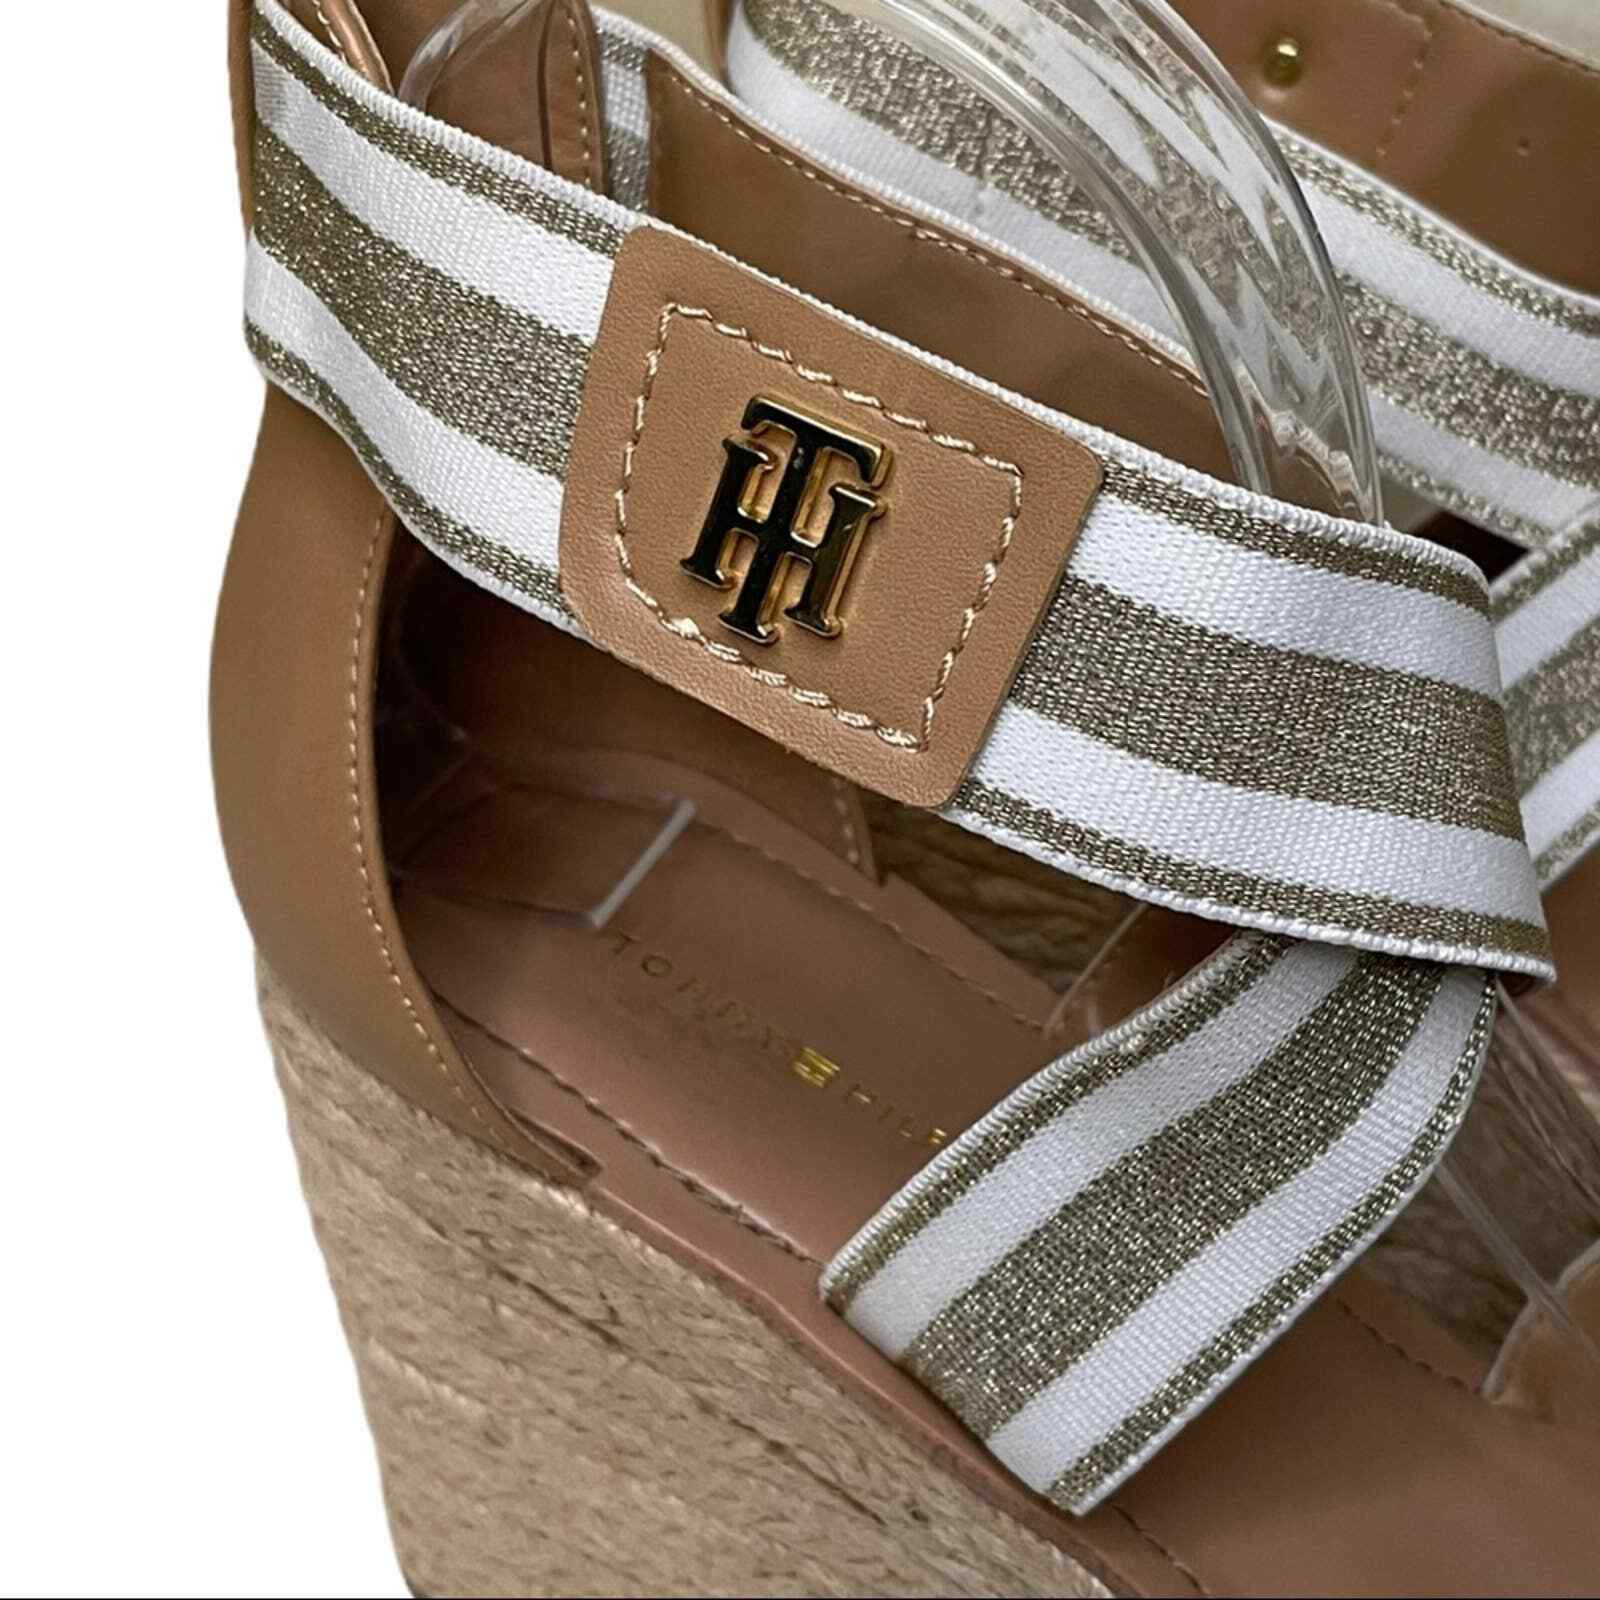 Tommy Hilfiger Theia Wedges Size 8.5 - image 4